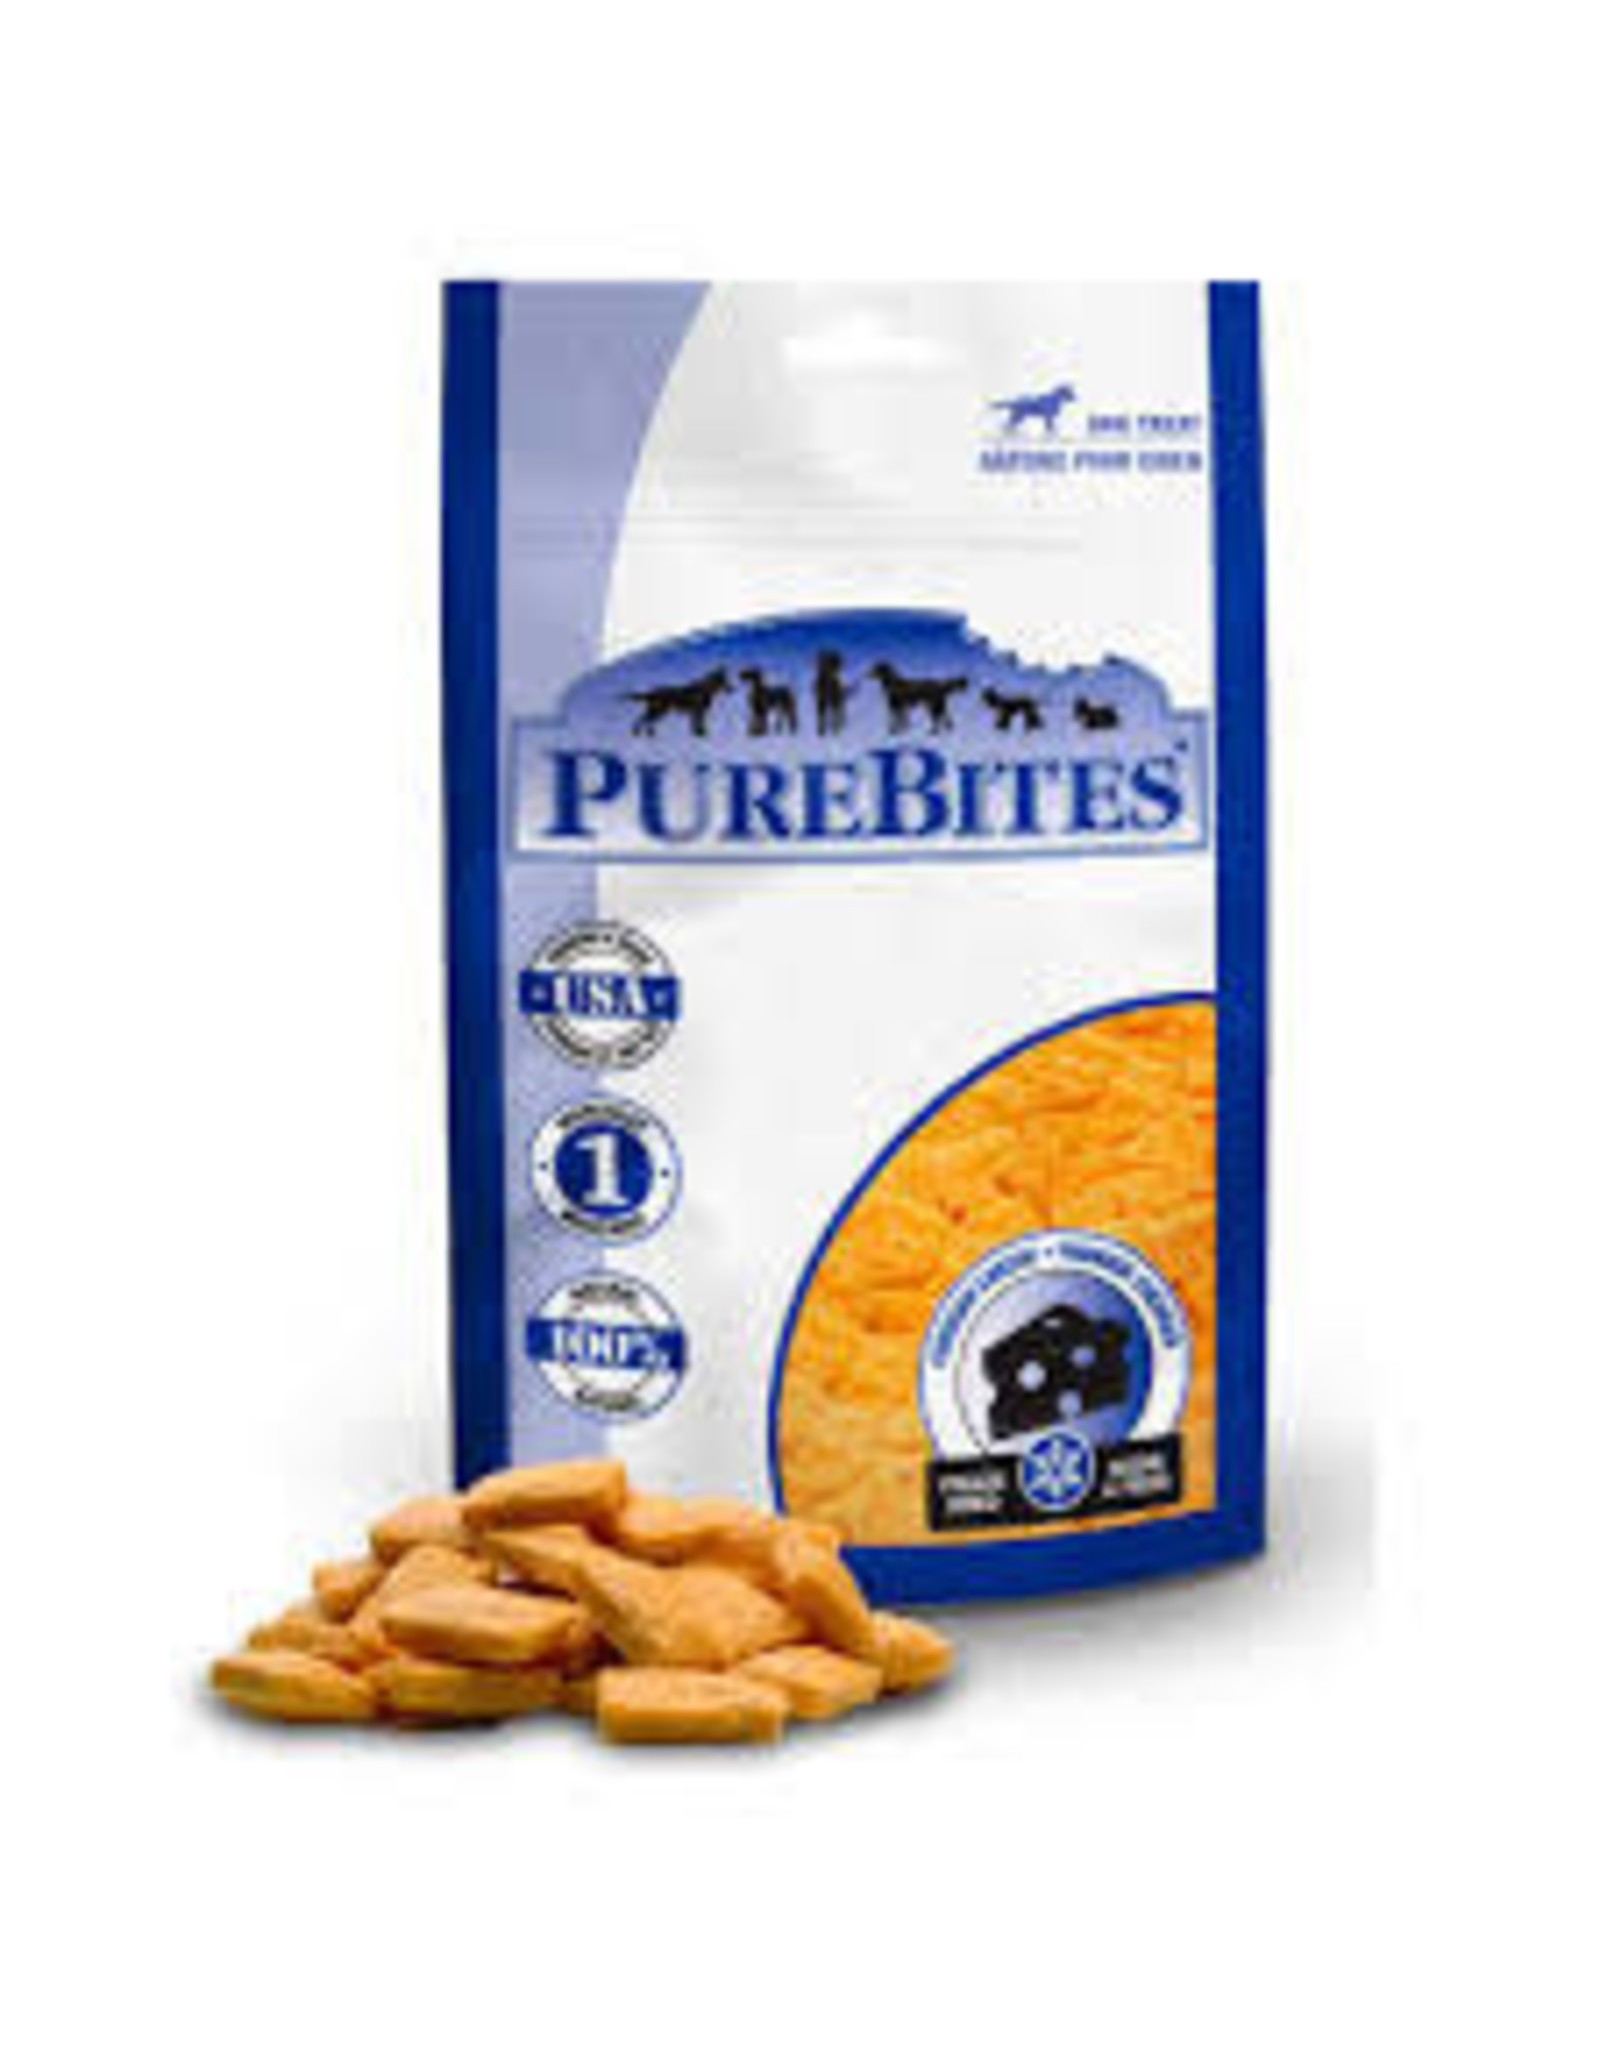 Pure Bites Pure Bites - Cheddar Cheese 250g